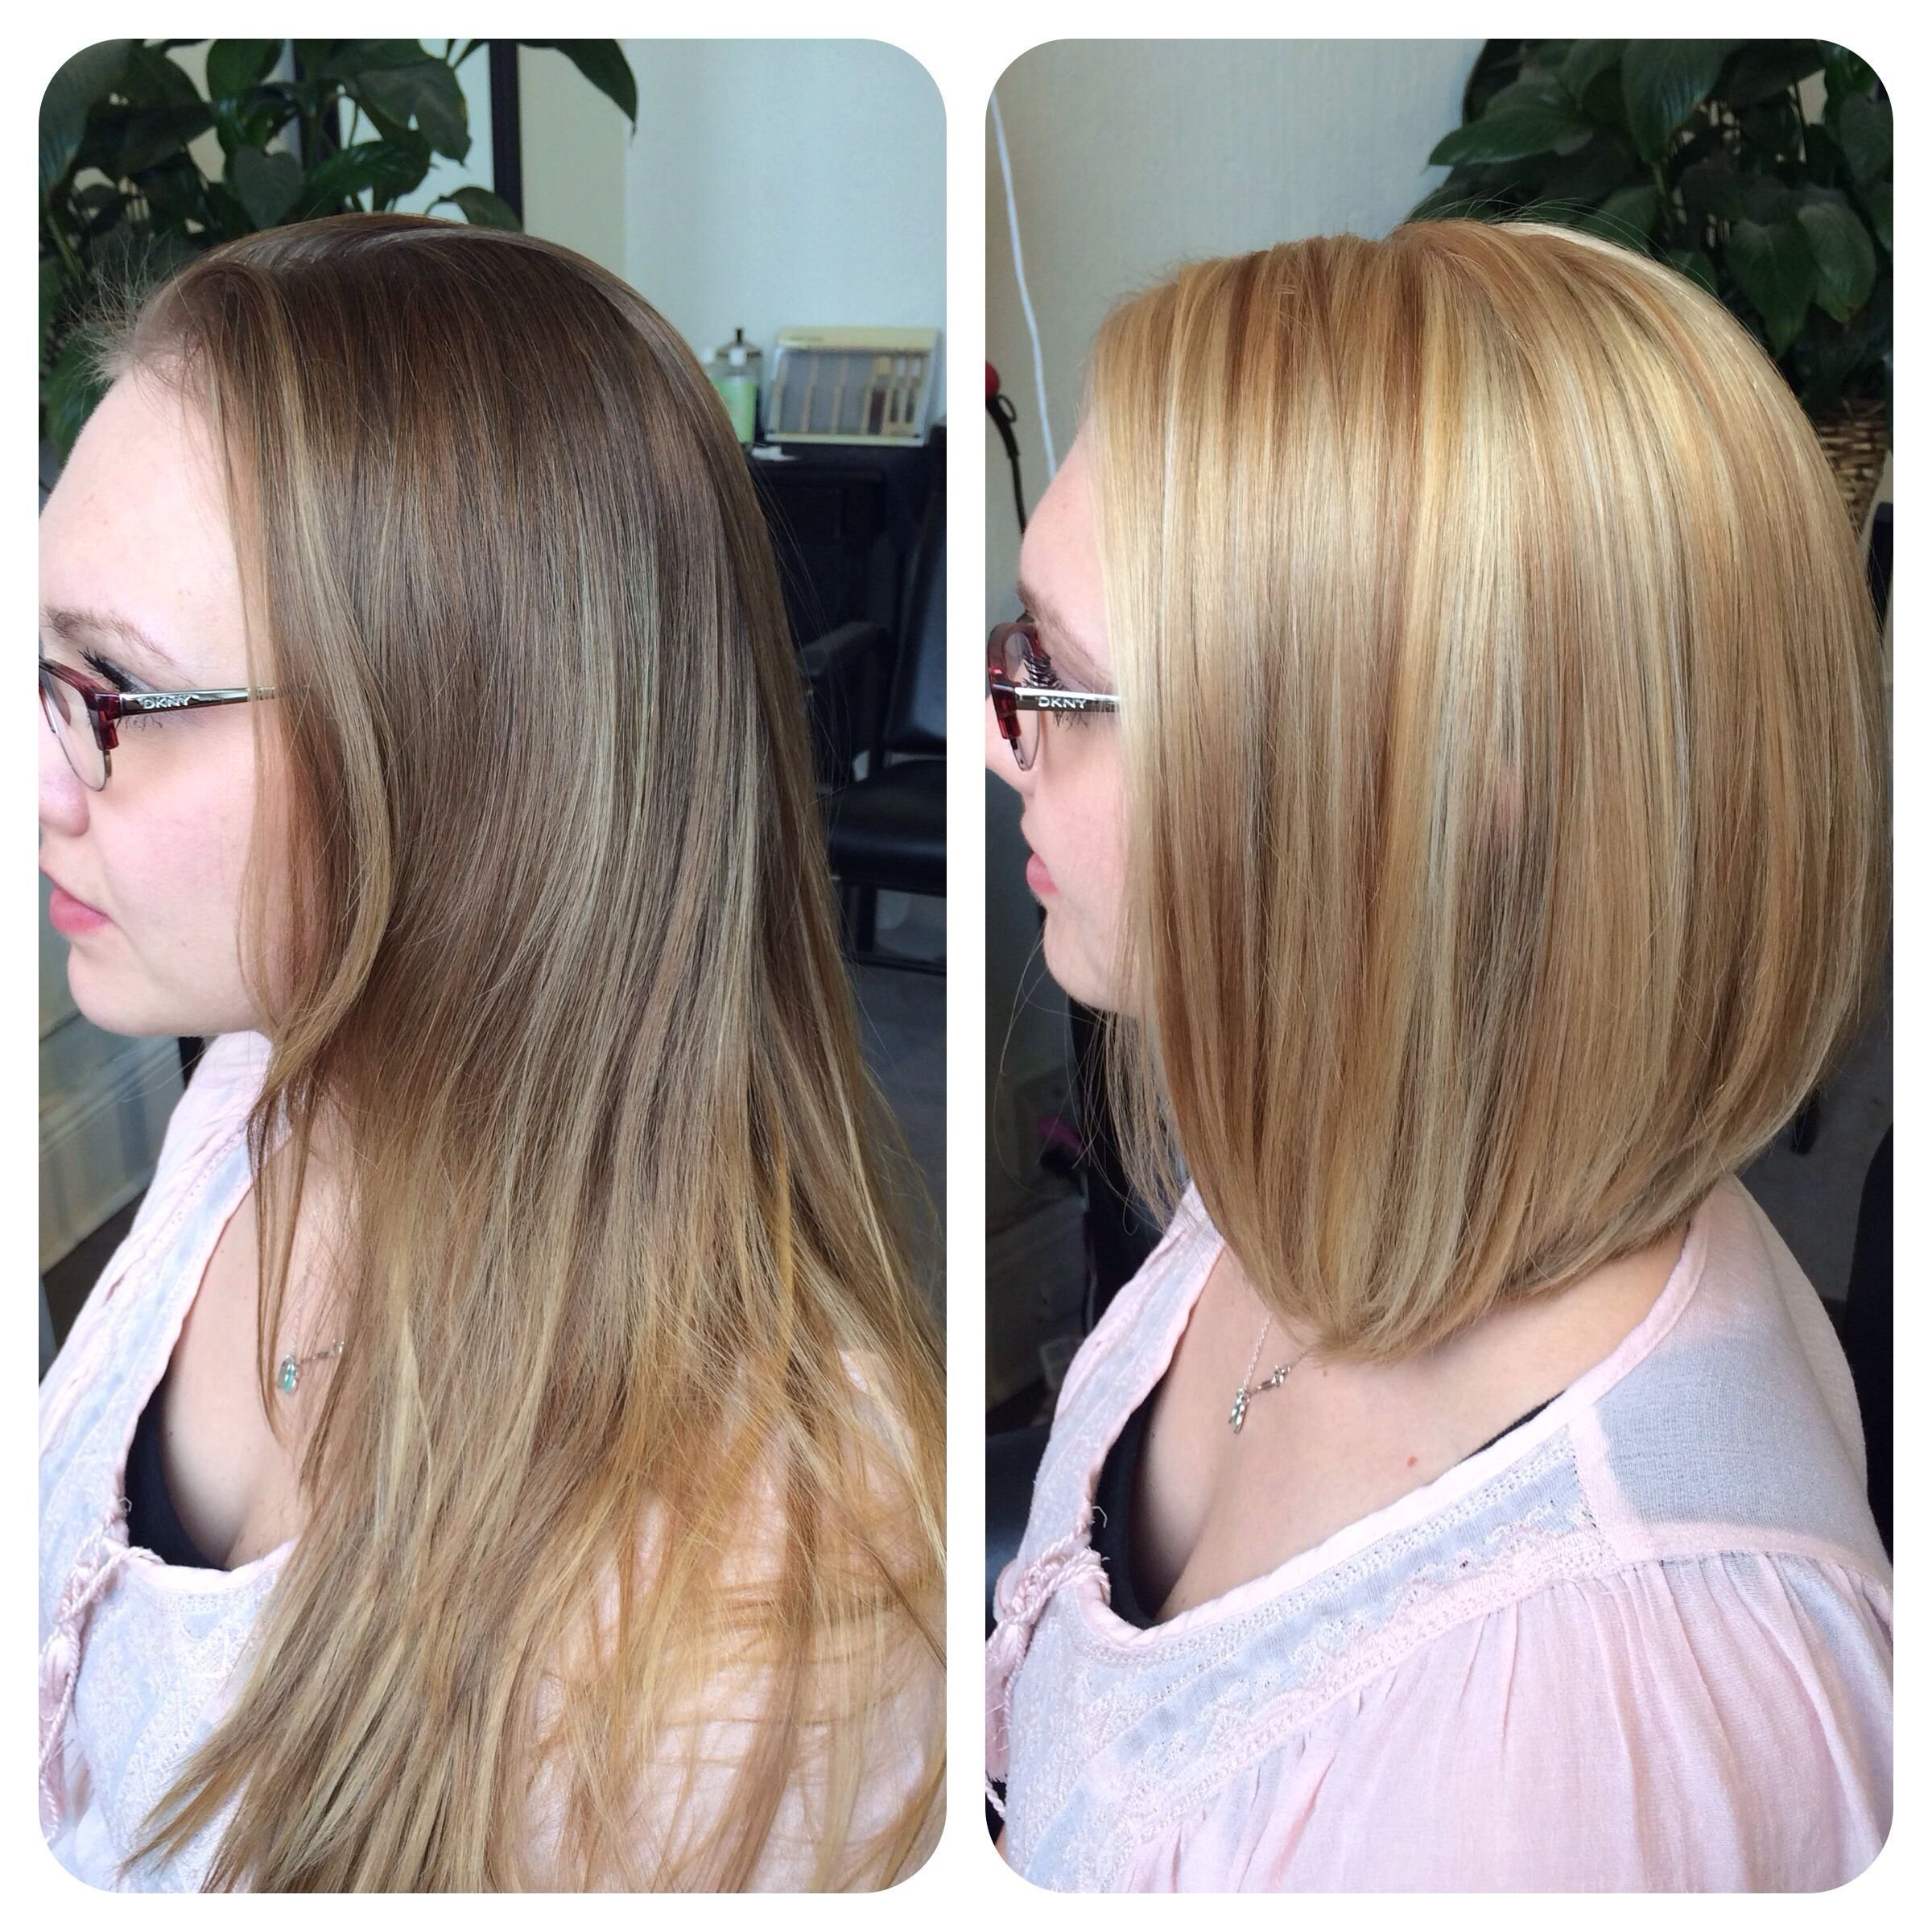 The Best Before After Partial Highlight With Blonde All Over Color Pictures